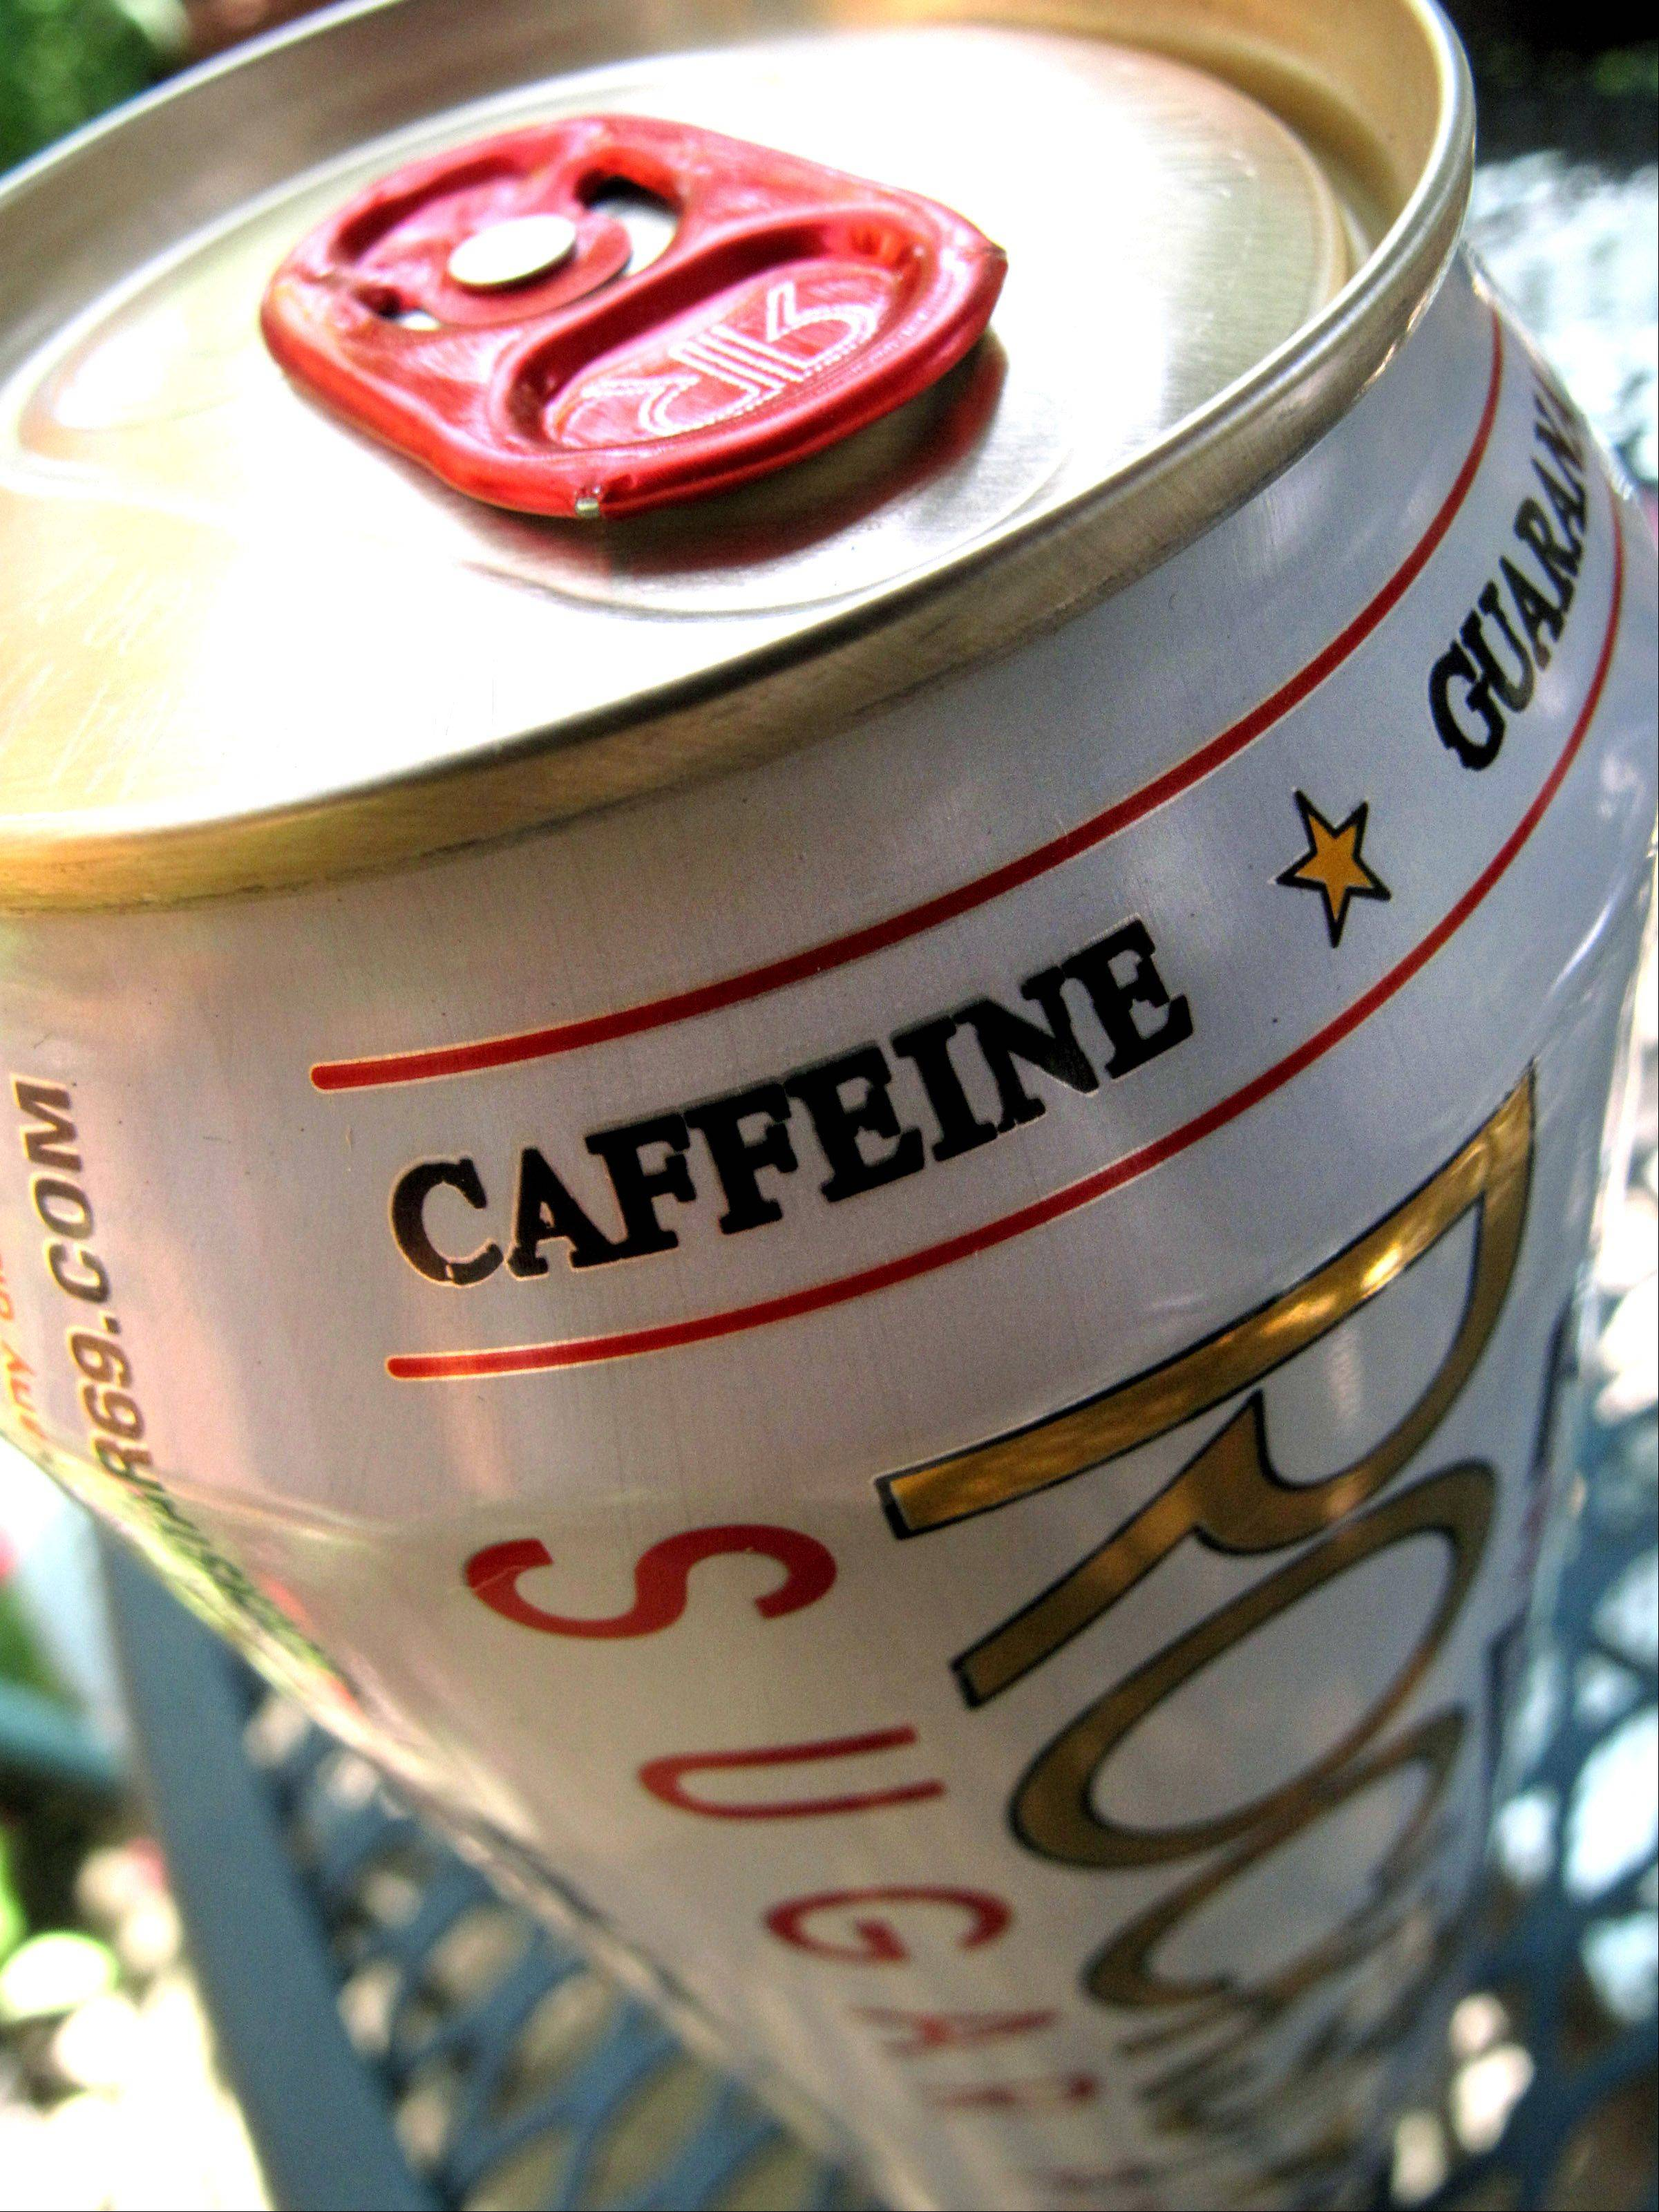 In the race to accomplish everything in their busy schedules, young people may be tempted to turn to caffeine to boost alertness, but local doctors warn against the practice.